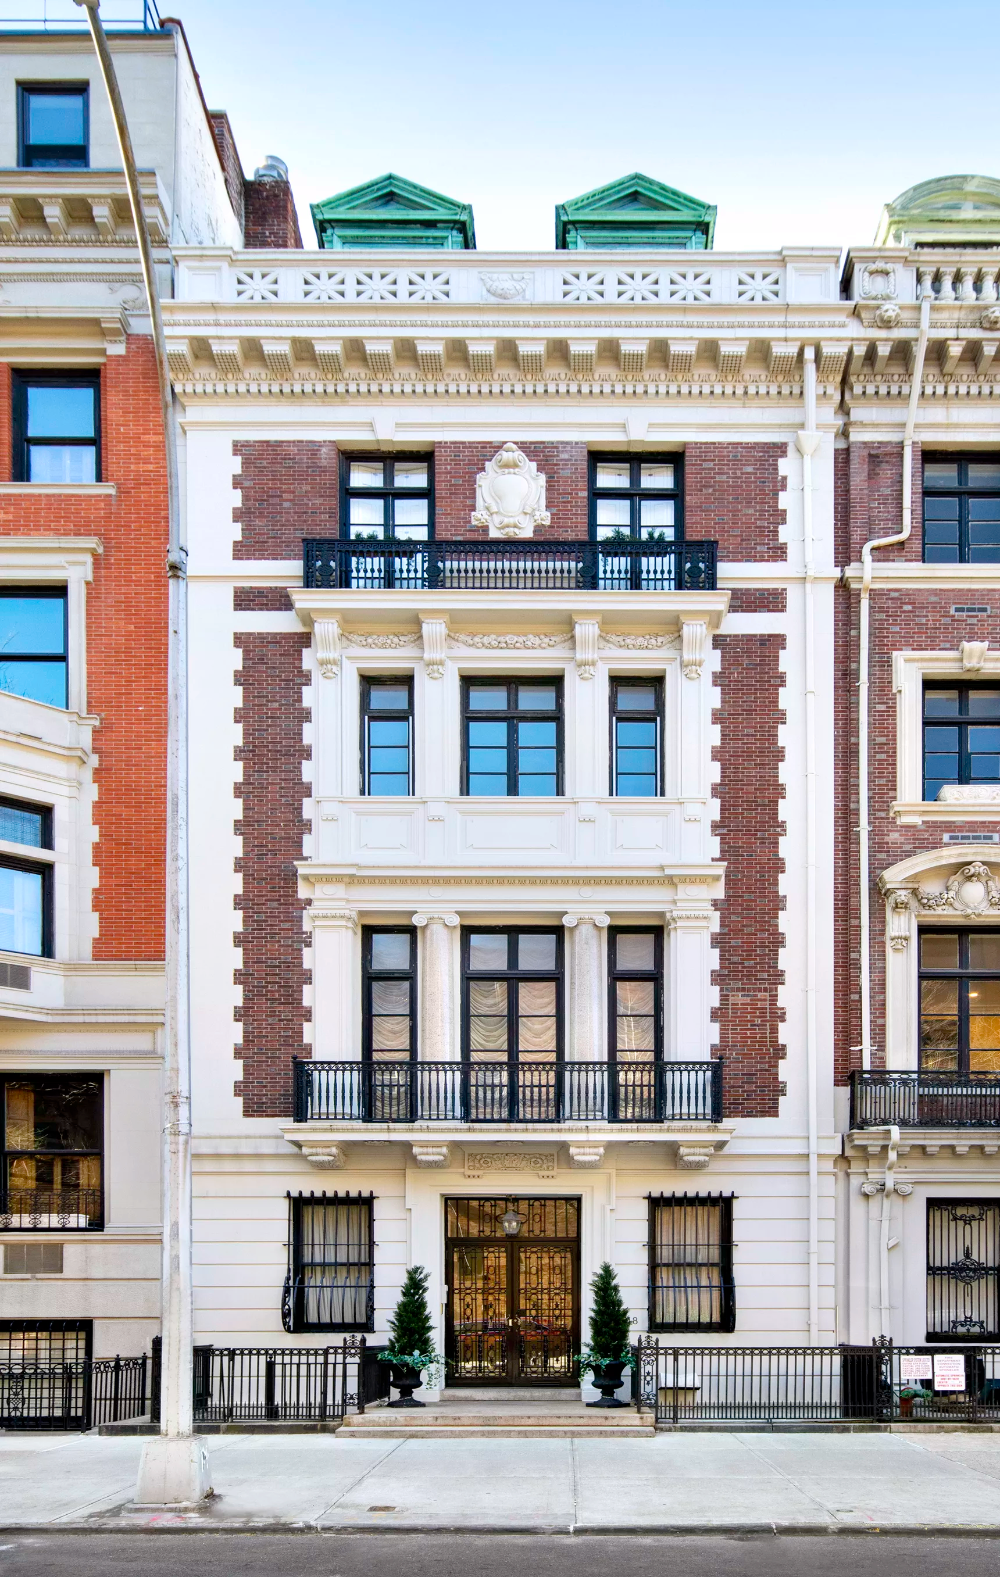 Anne Hathaway lists stunning Upper West Side penthouse for